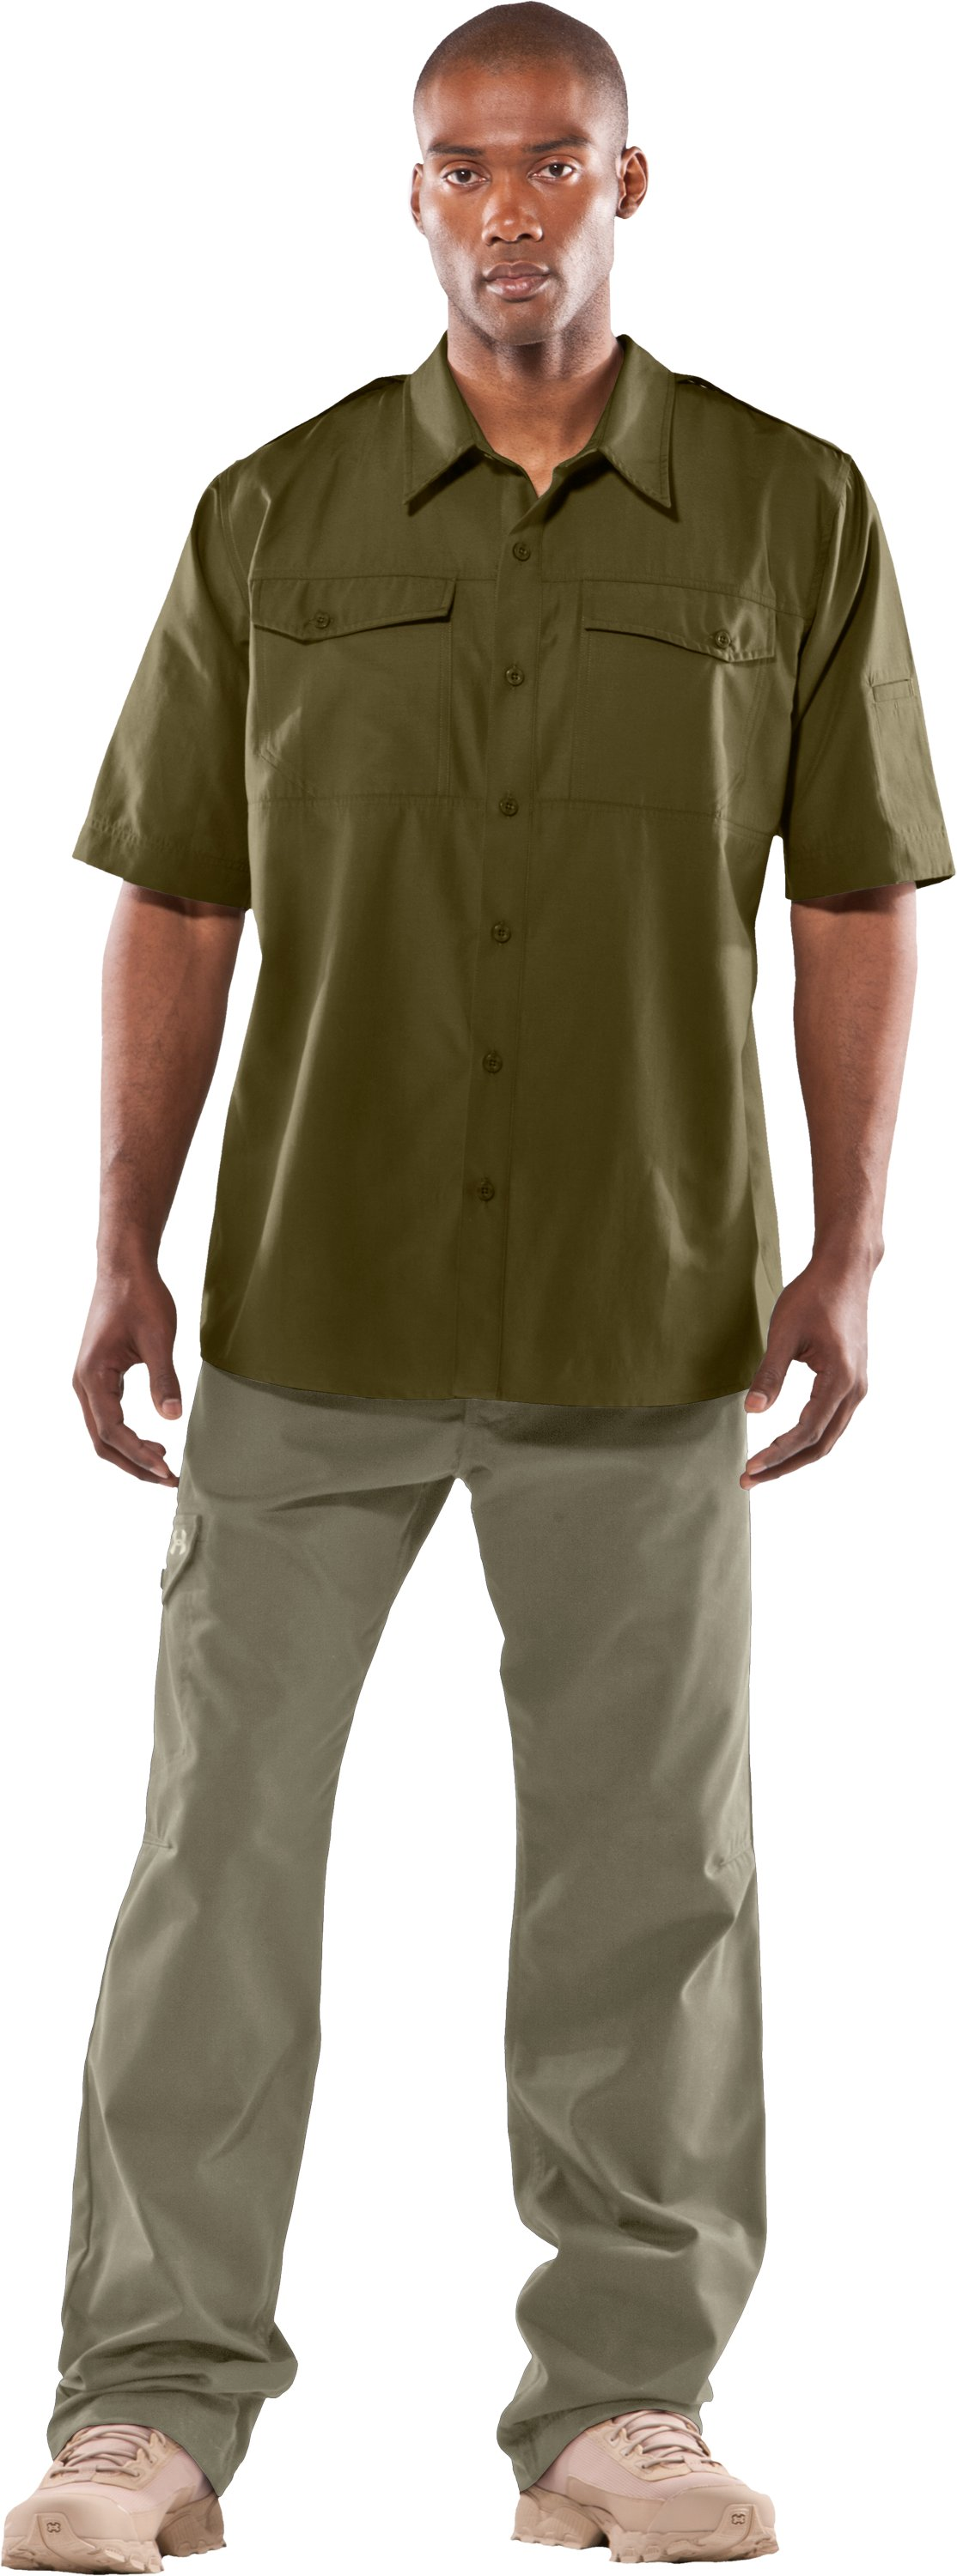 Men's Counter Short Sleeve Tactical Shirt, Marine OD Green